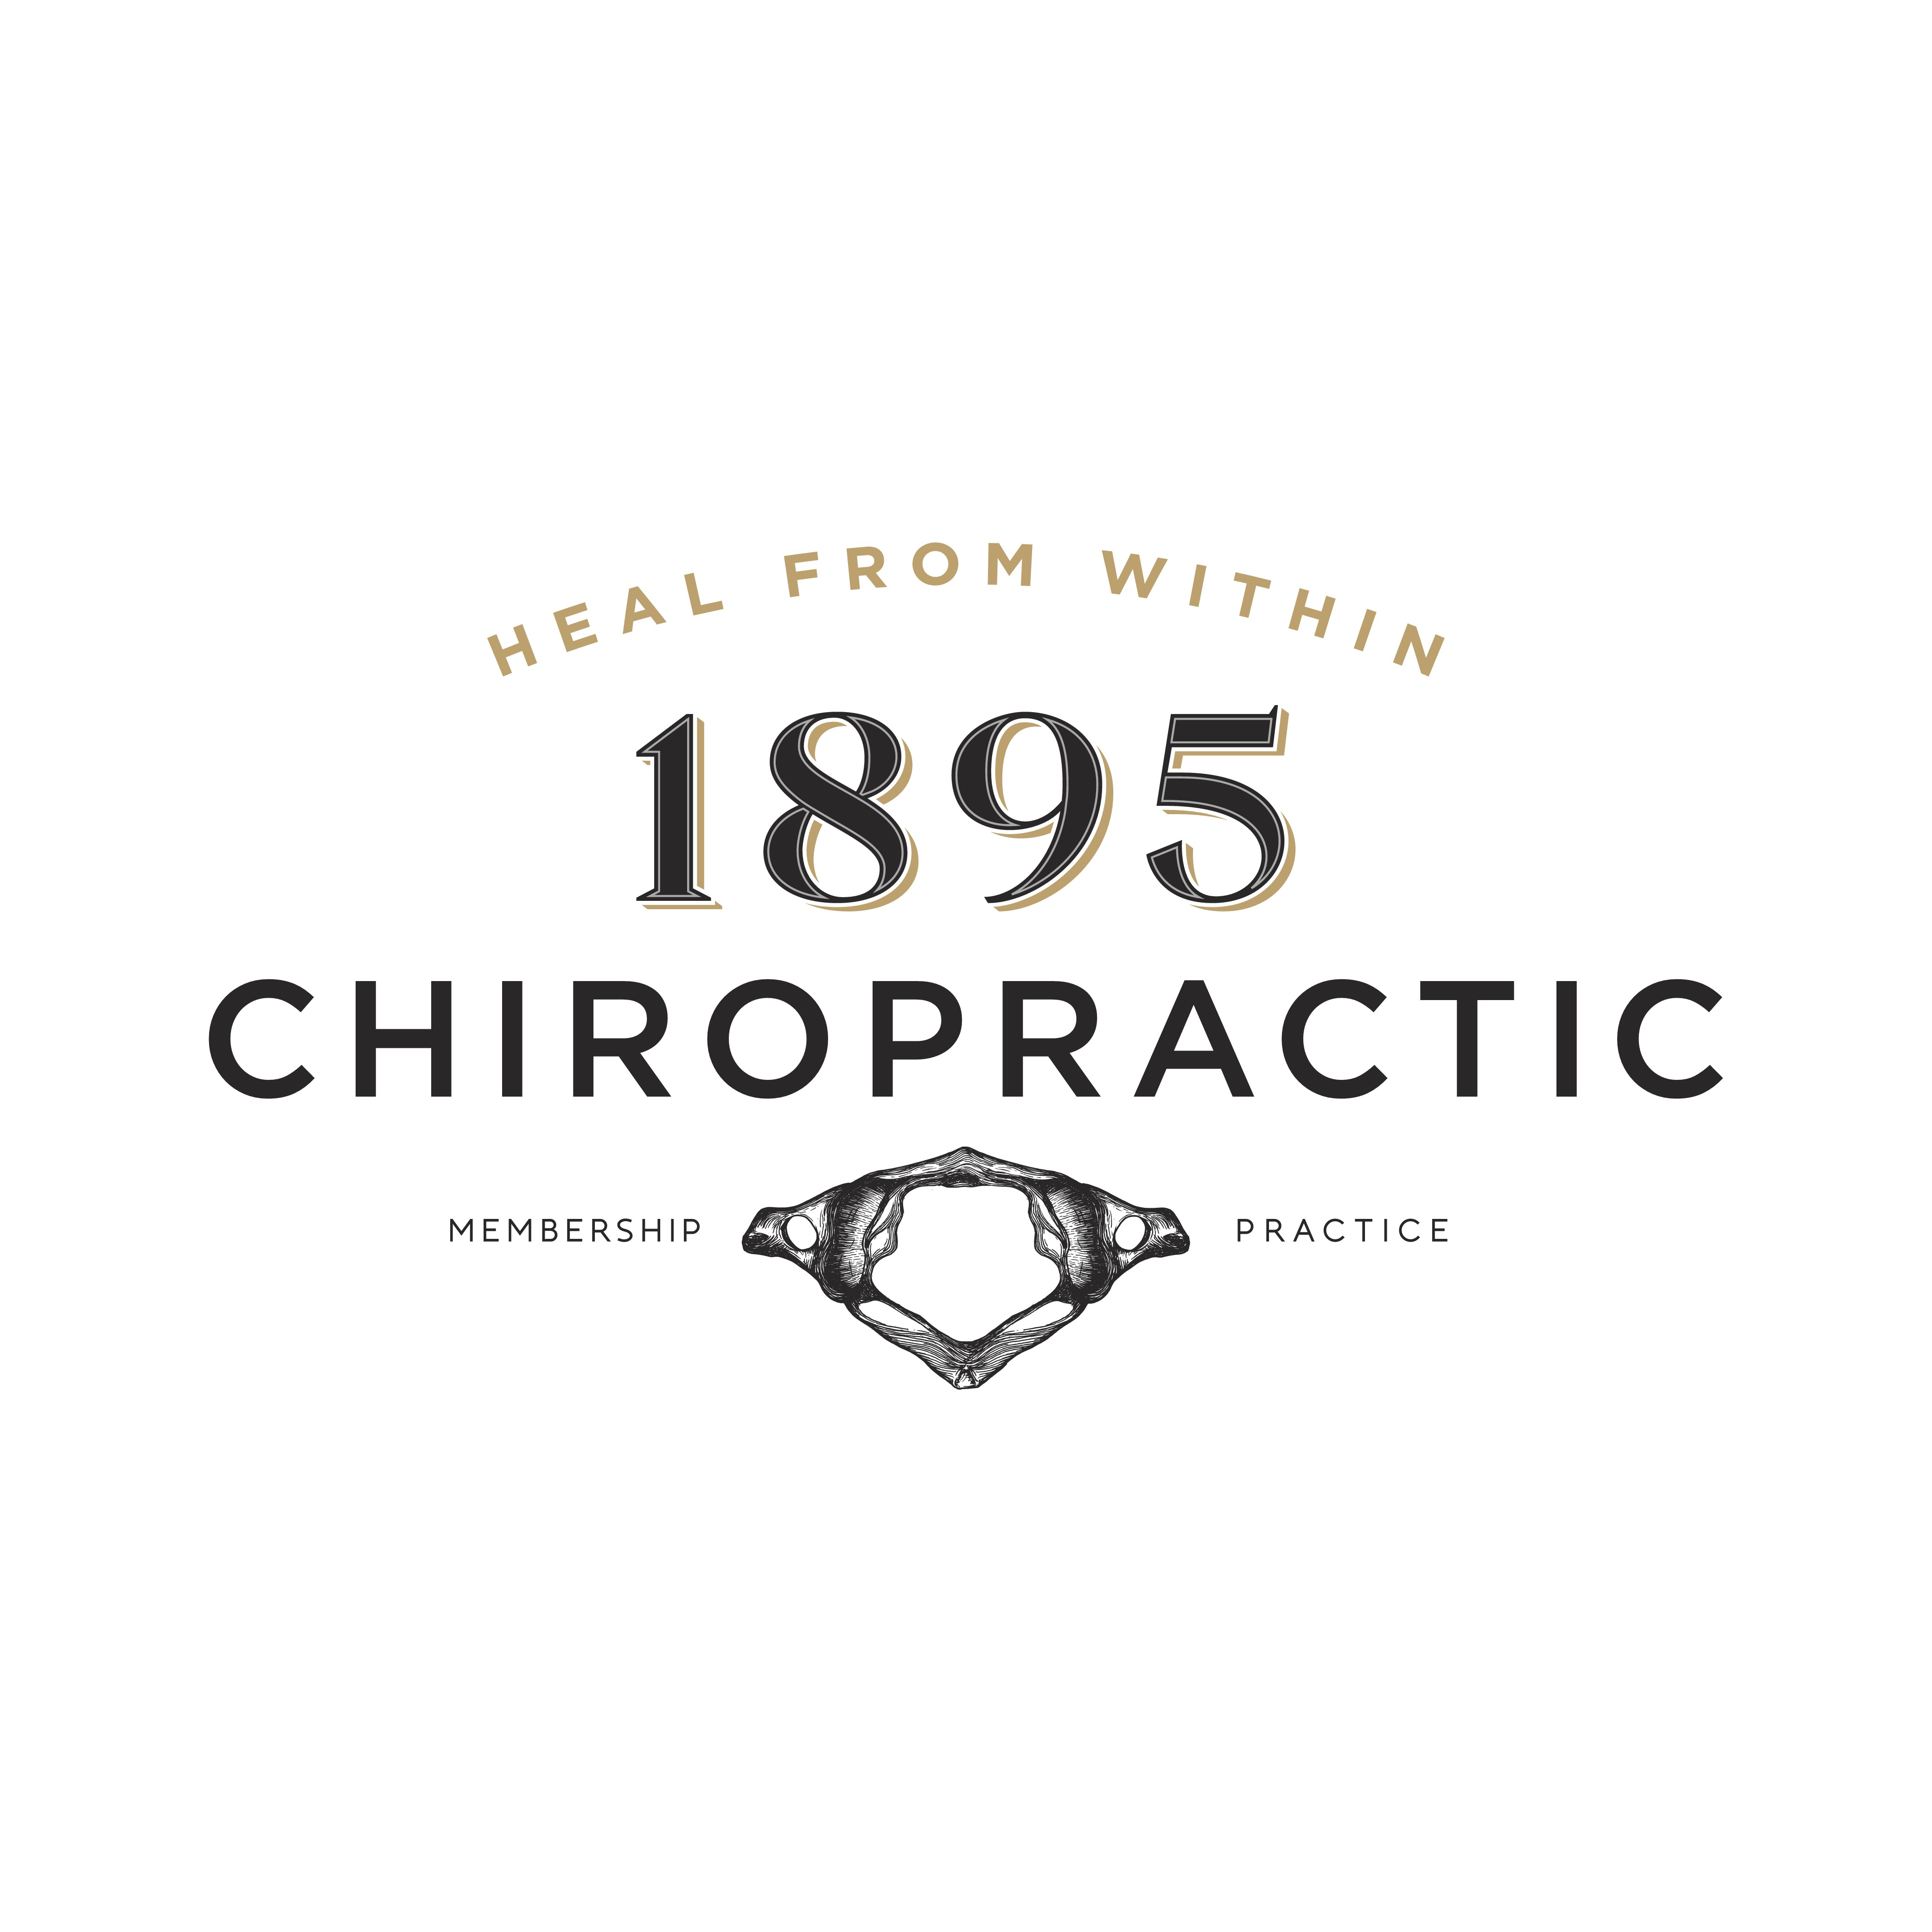 Create an industrial/sleek logo for a Chiropractic office